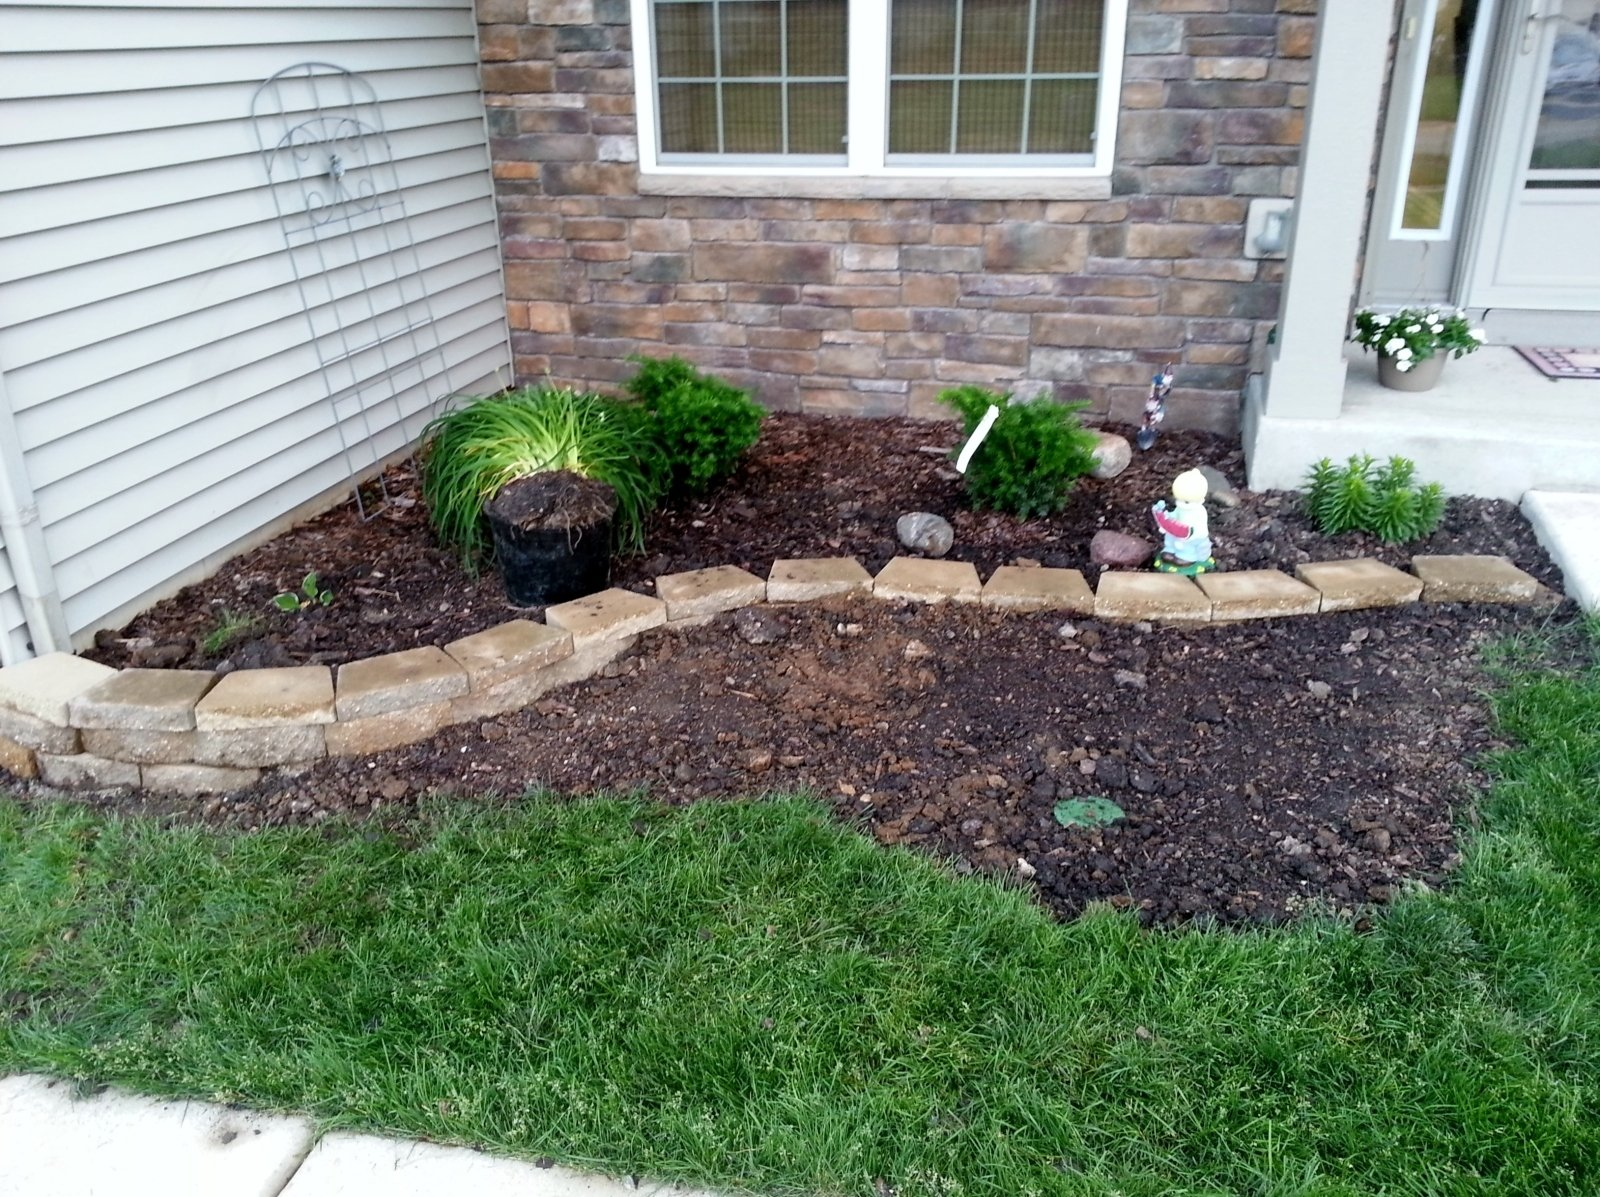 10 Spectacular Cheap Landscaping Ideas For Front Yard top simple front yard landscaping ideas manitoba design easy and 2020